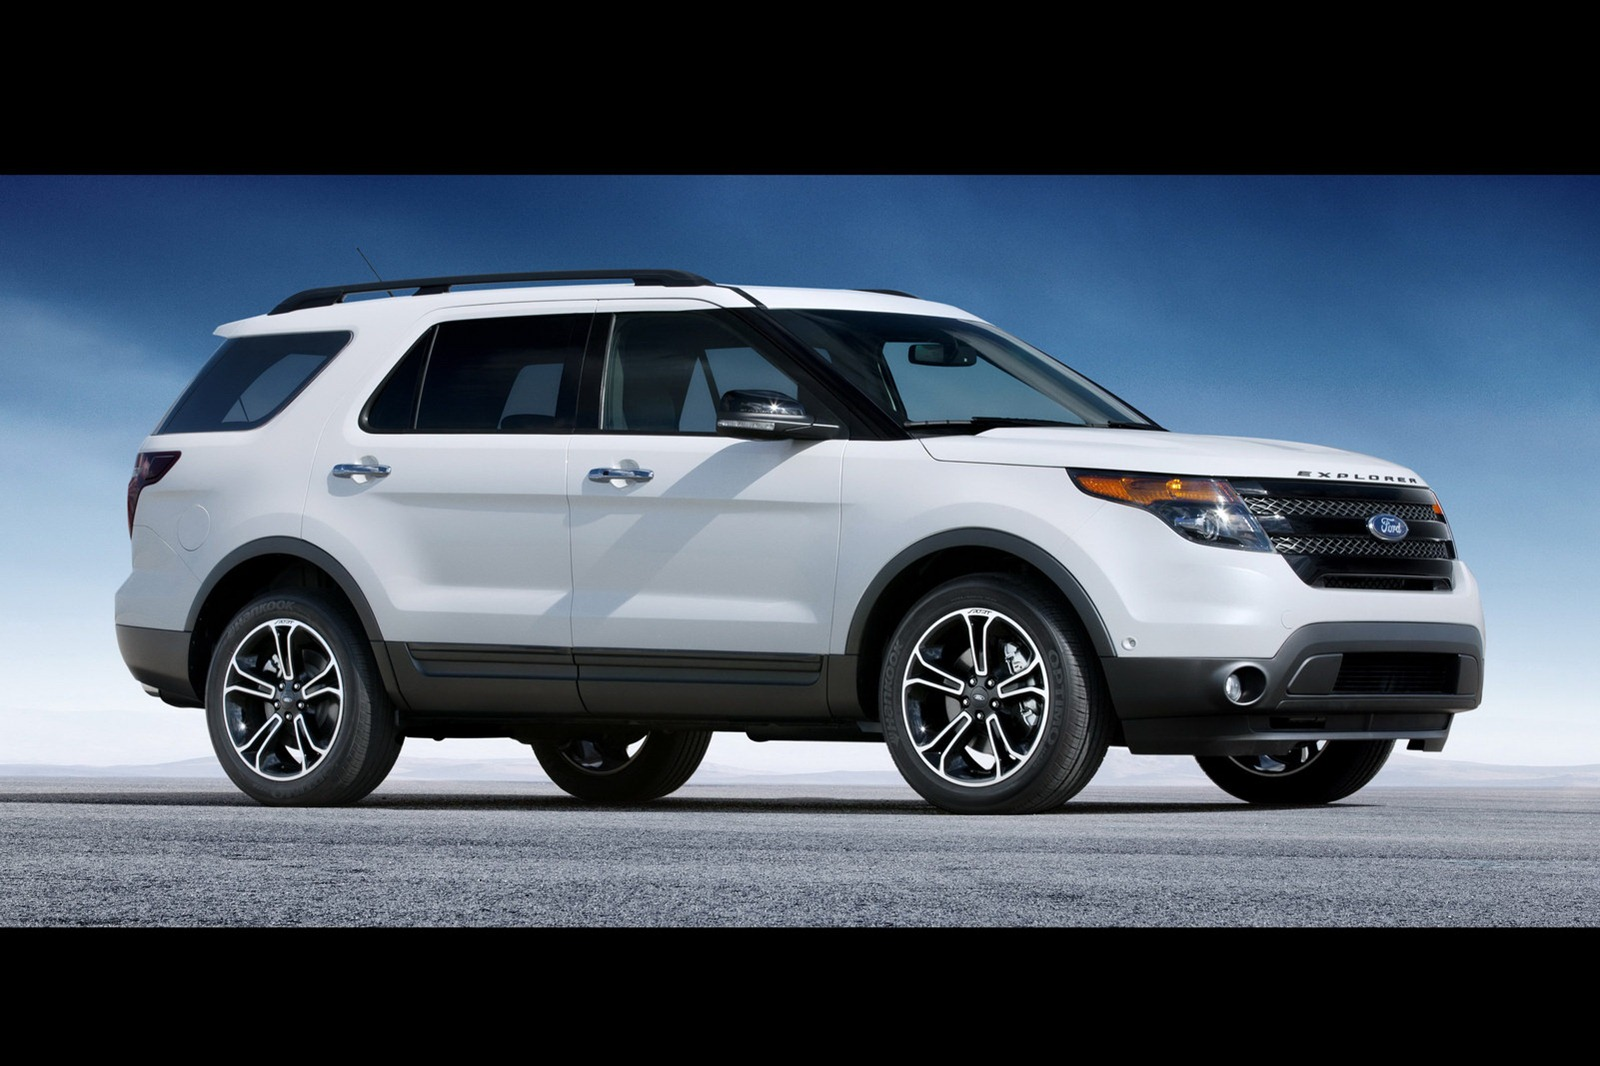 Px Stevensons Seddon Pennine Asd T additionally Ford Explorer Sport Photo Gallery additionally Maxresdefault together with Carbon Motors Police X W as well Cd A C B C D Dee R. on automatic transmission service